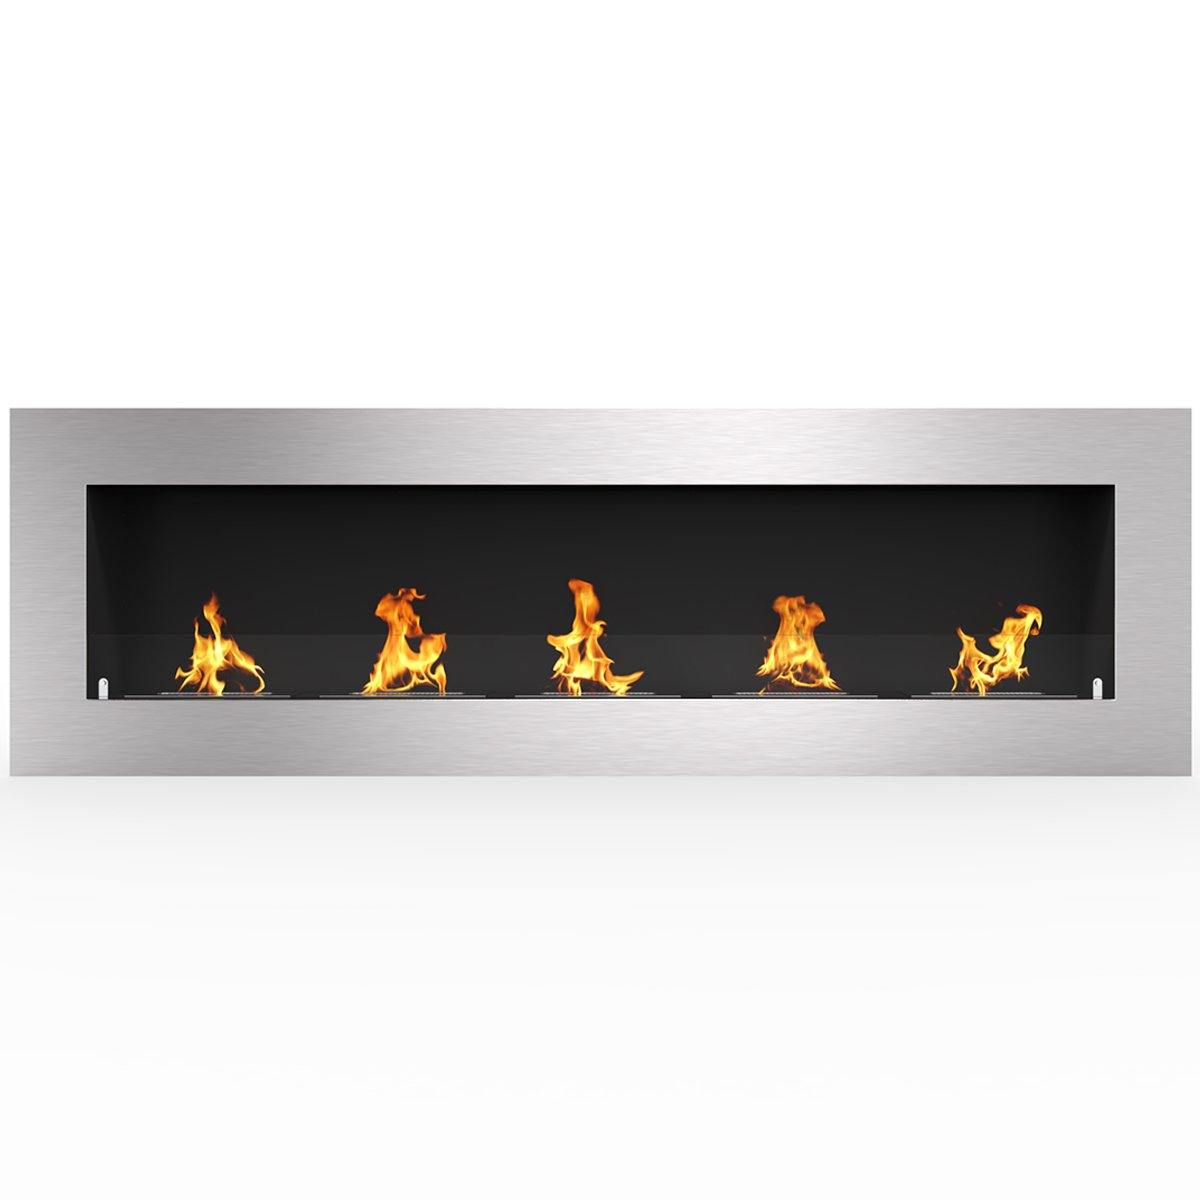 Regal Flame Warren 72'' PRO Ventless Built In Wall Recessed Bio Ethanol Wall Mounted Fireplace Similar Electric Fireplaces, Gas Logs, Fireplace Inserts, Log Sets, Gas Fireplaces, Space Heaters, Propane by Regal Flame